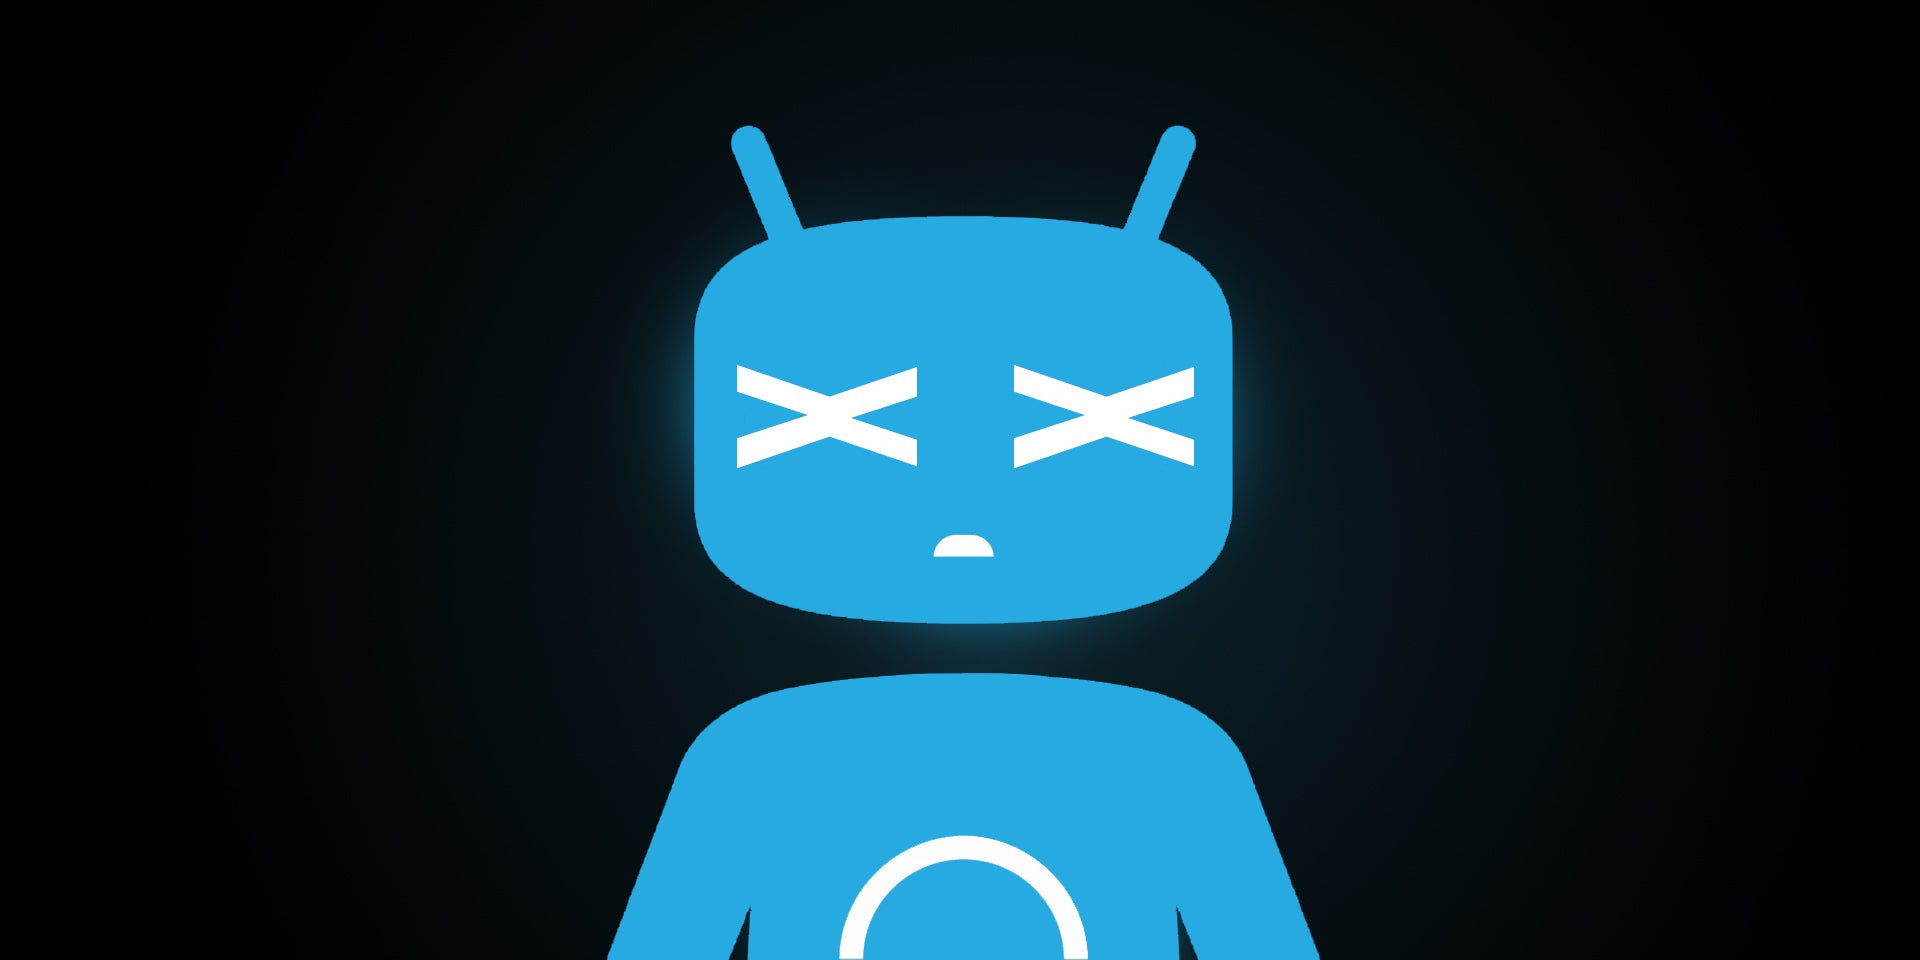 CyanogenMod Is Dead, And Its Successor Is Lineage OS